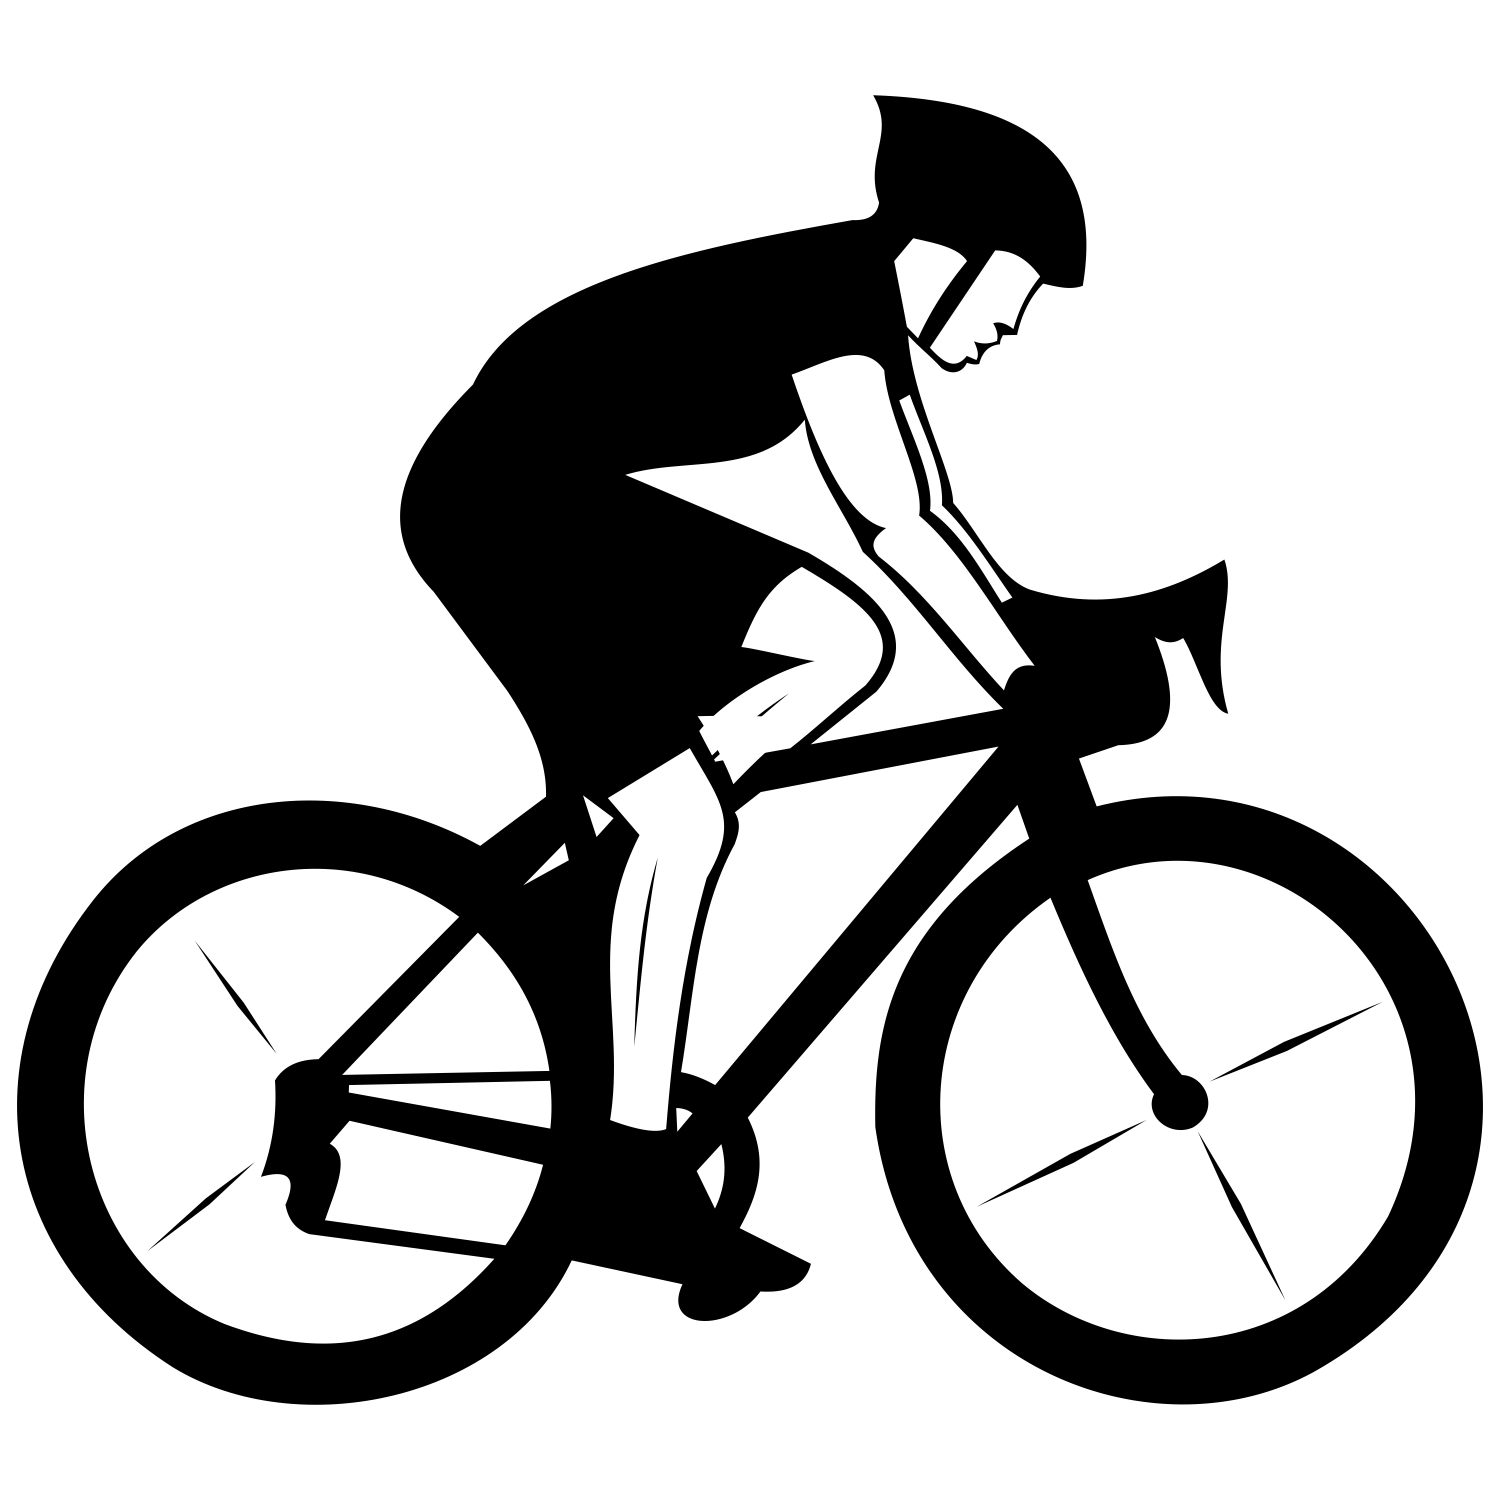 Silhouette Biking Png Google Search Bicycle Art Bicycle Cyclist